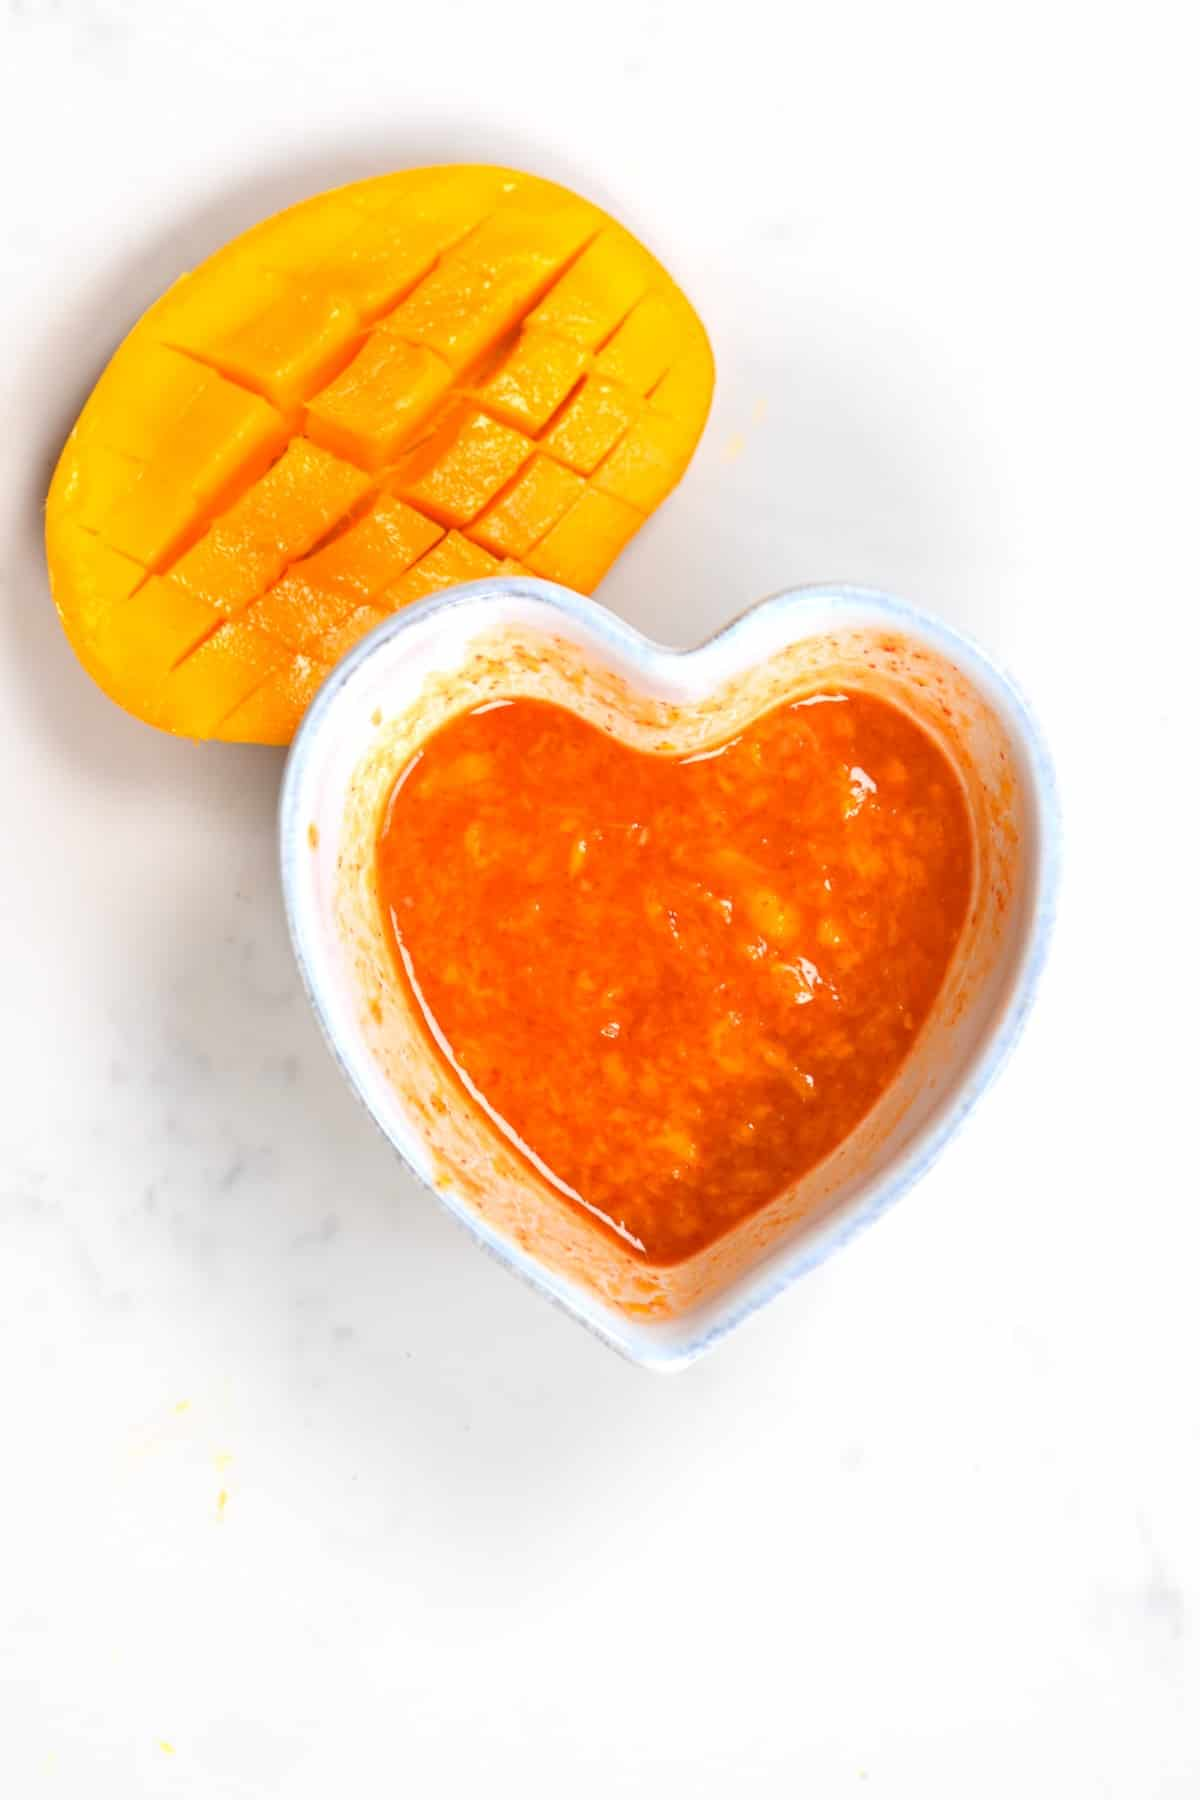 Mango Sweet Chili Dipping Sauce and a mango cut in half